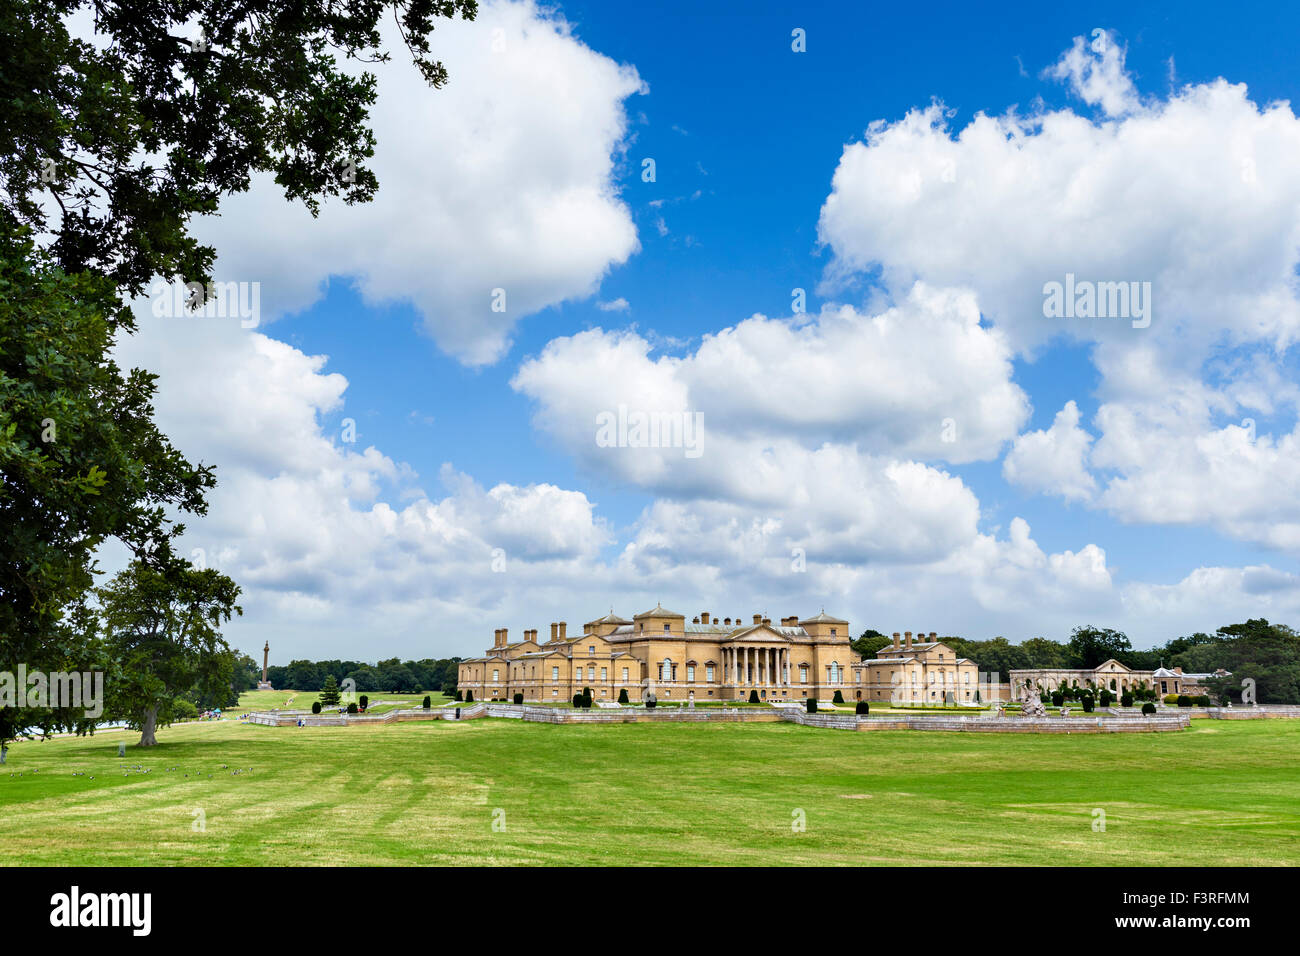 Holkham Hall, an early 18thC Palladian country house in Holkham, Norfolk, England, UK - Stock Image